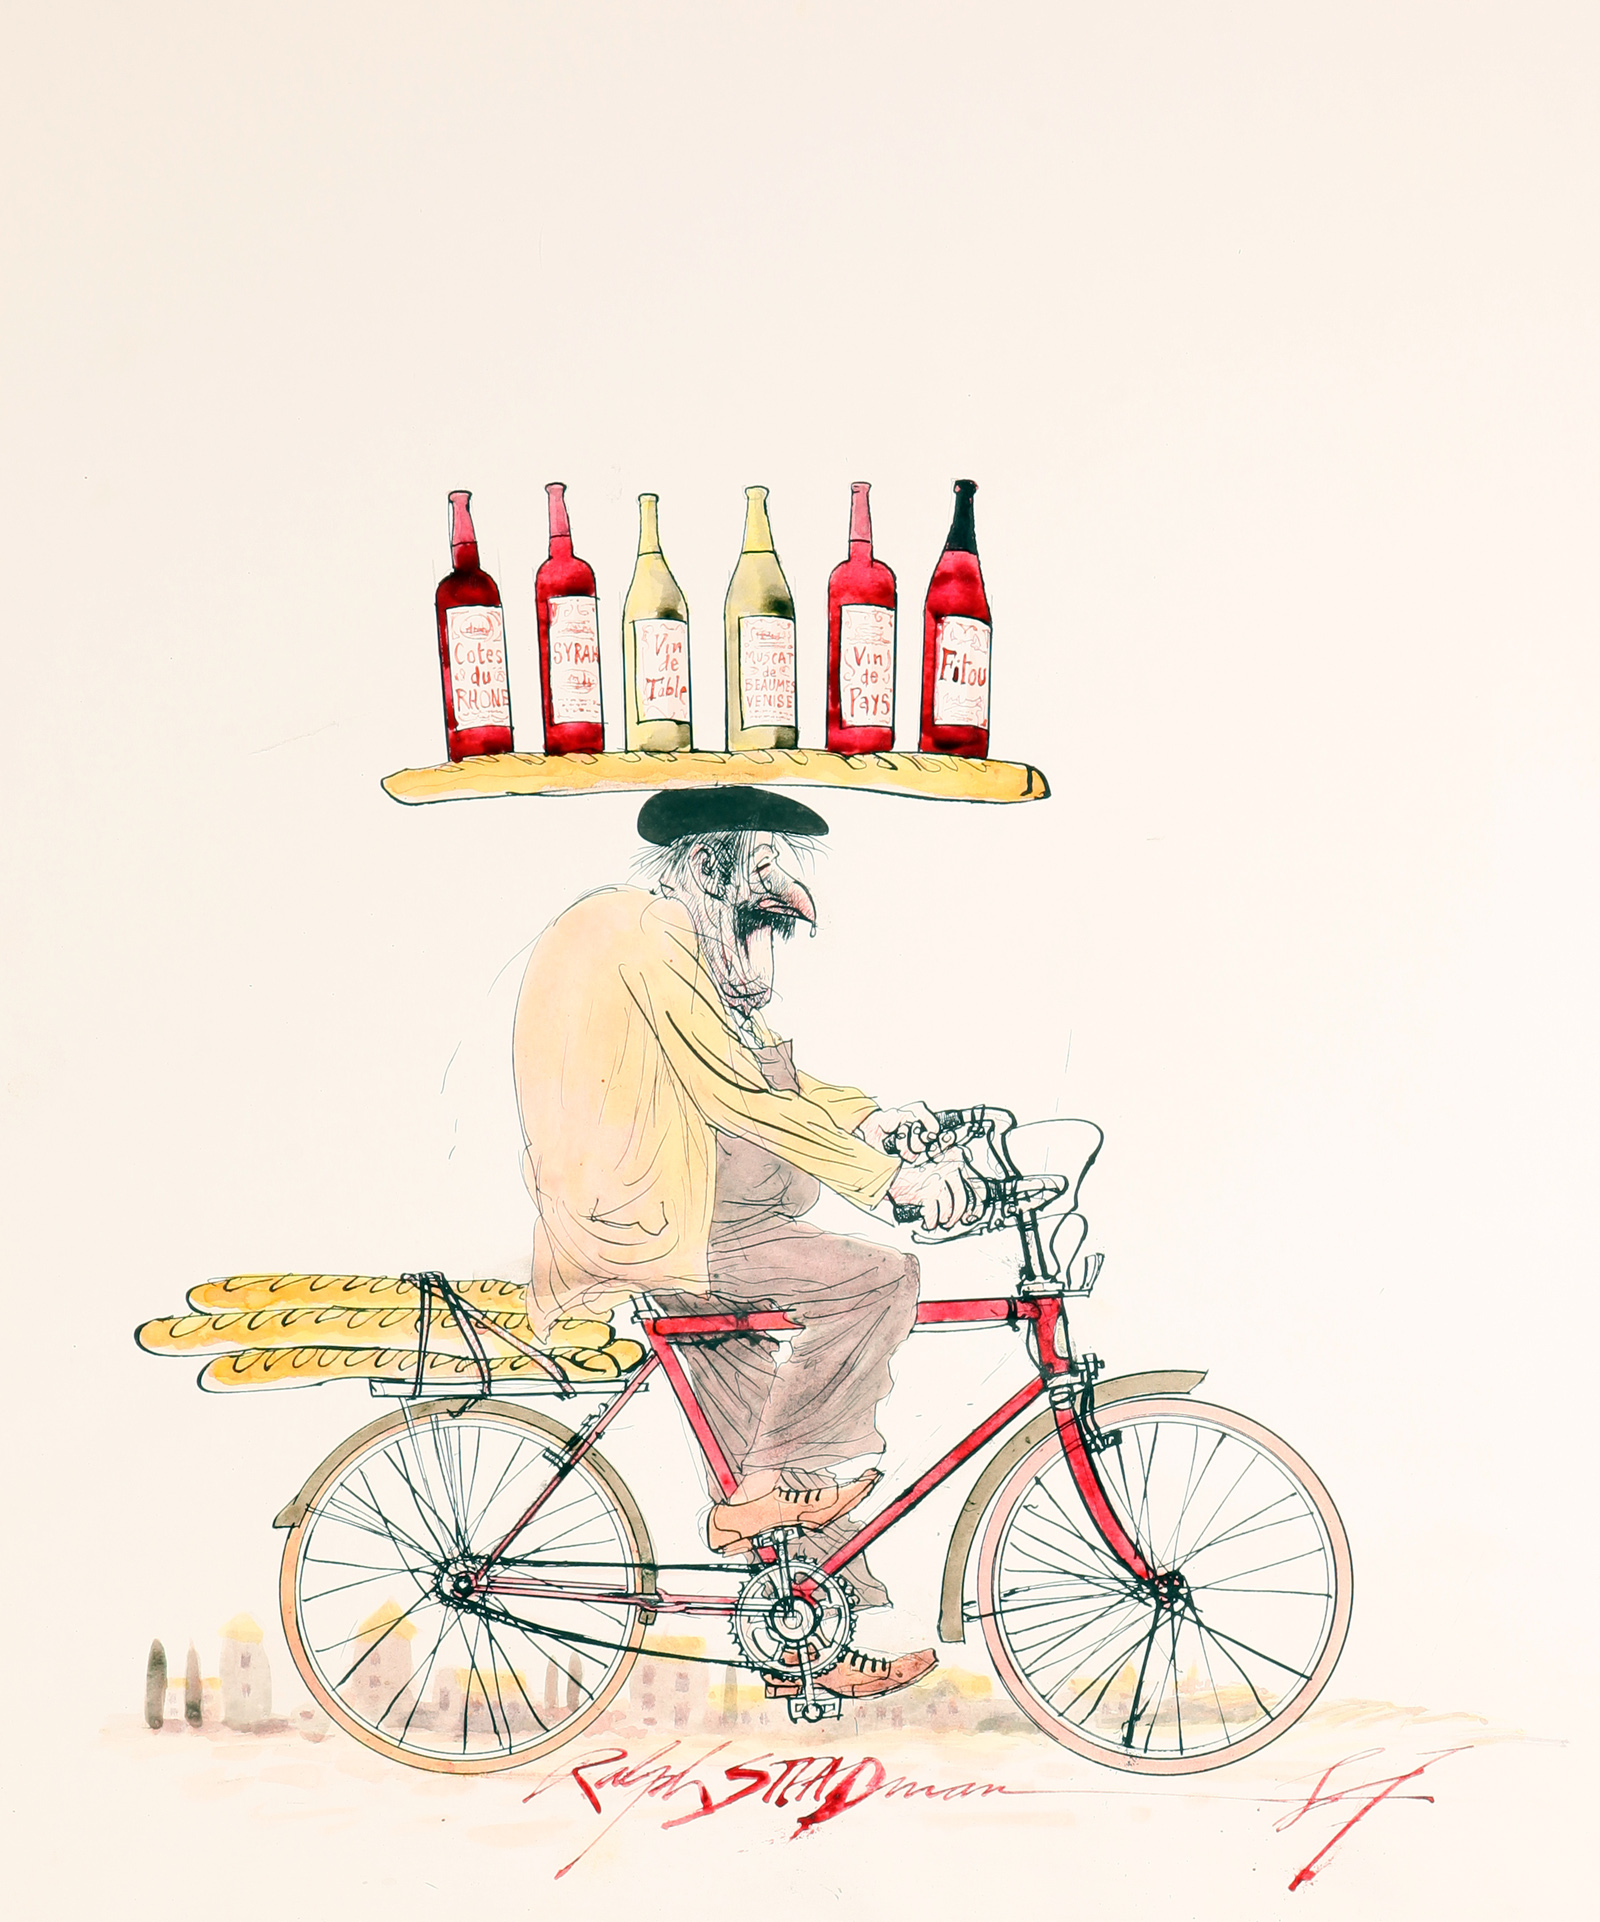 Cover artwork for The Grapes of Ralph, a frenchman on a bike, by Ralph Steadman for Oddbins the wine merchants.